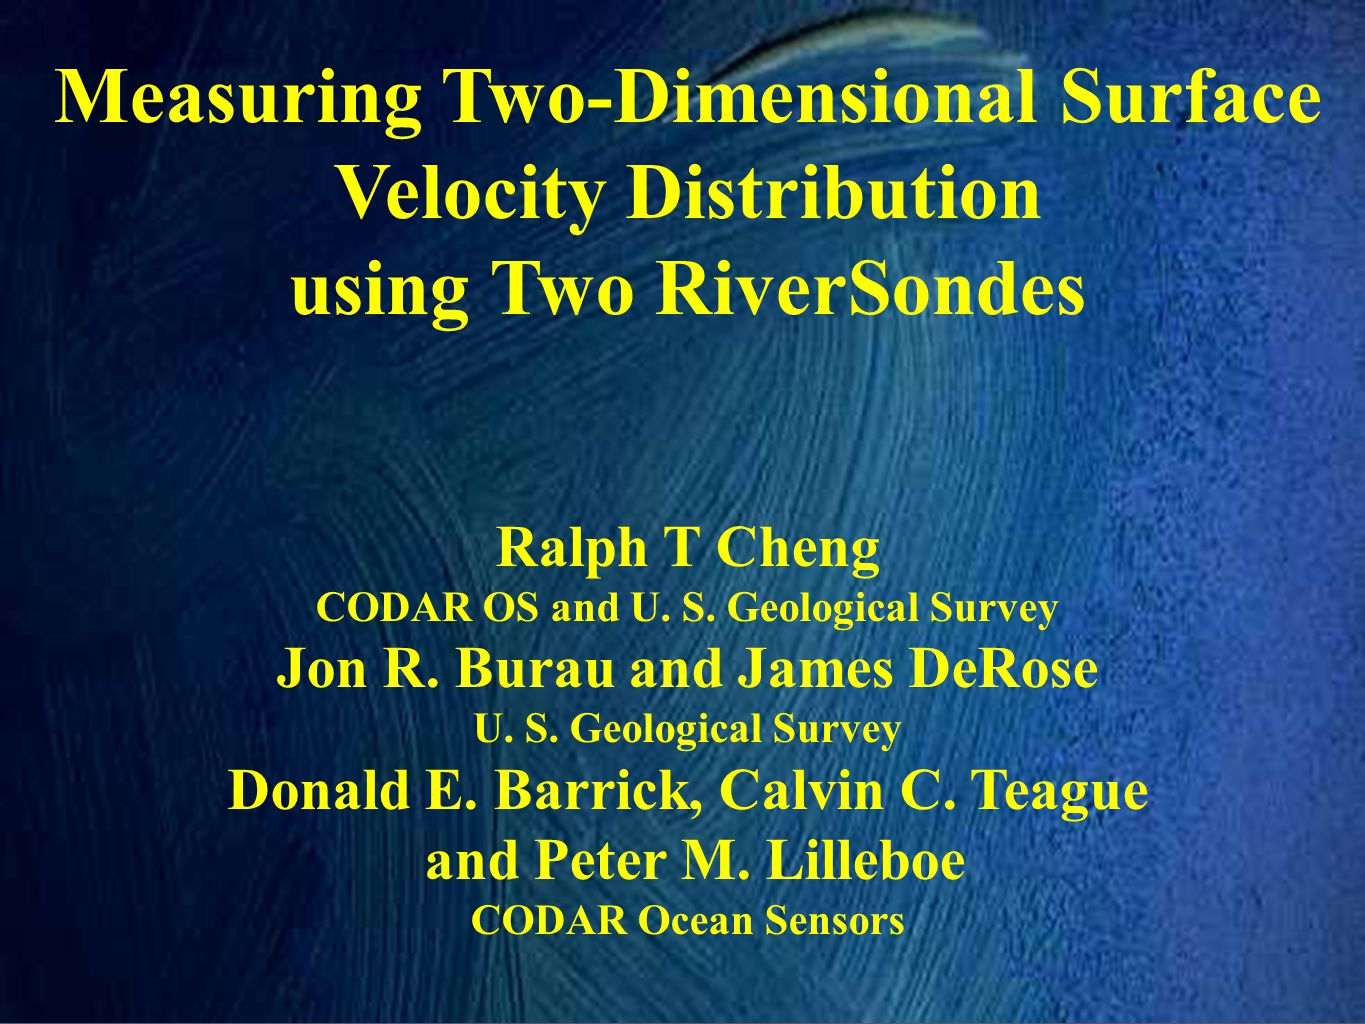 Measuring Two-Dimensional Surface Velocity Distribution